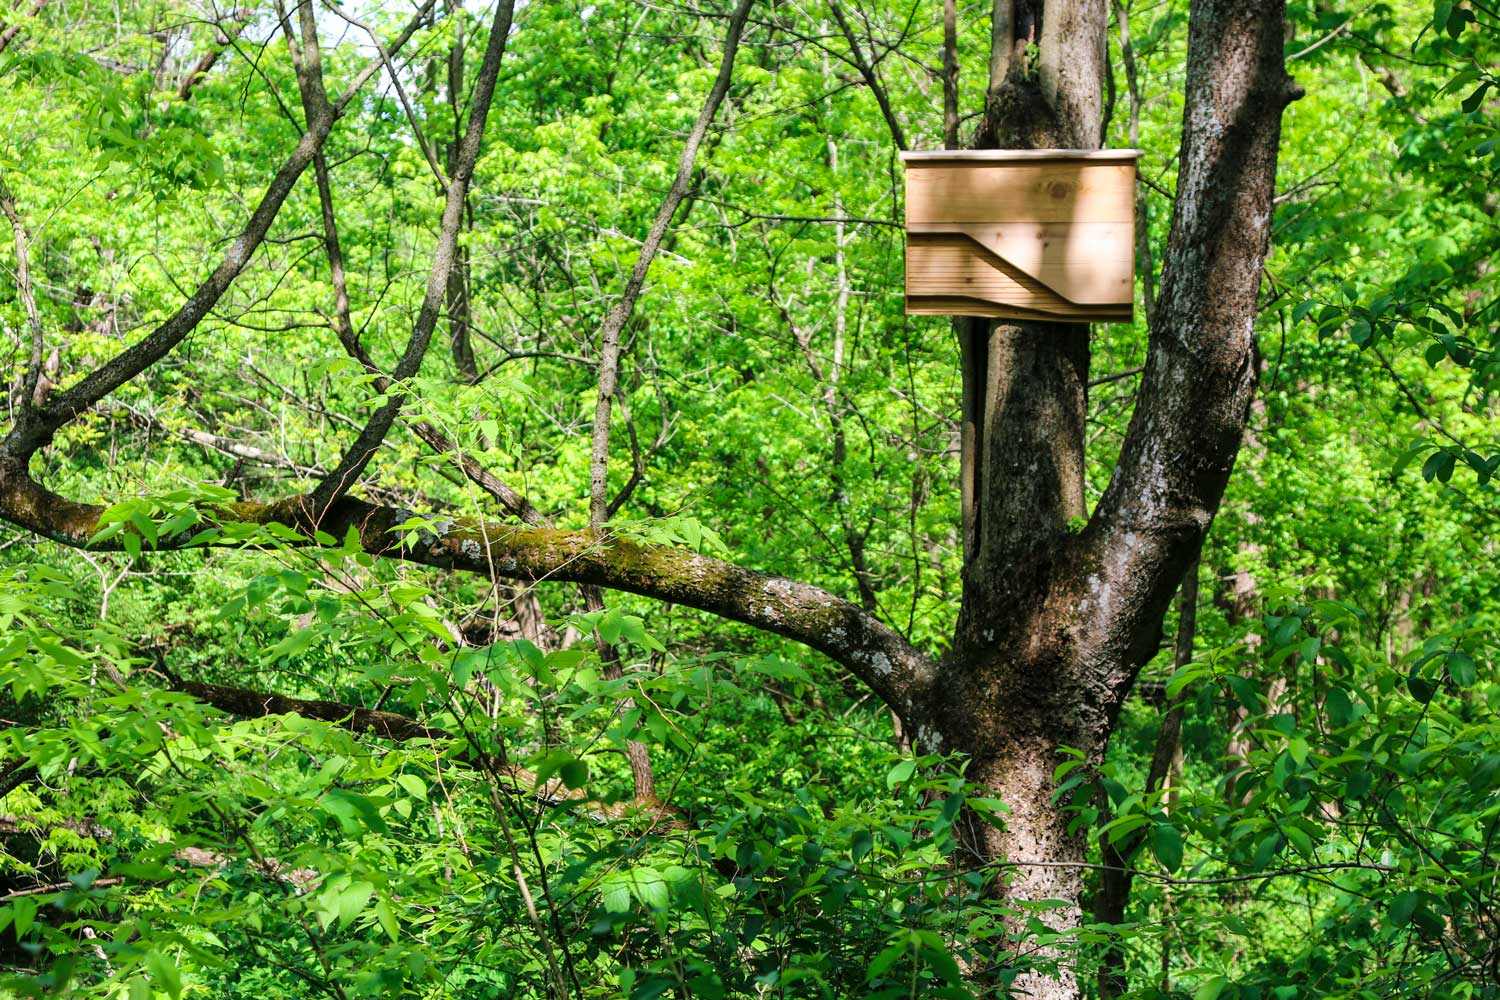 The bat houses can be mounted in trees or on the sides of homes and buildings, providing a safe home for bats in the area.